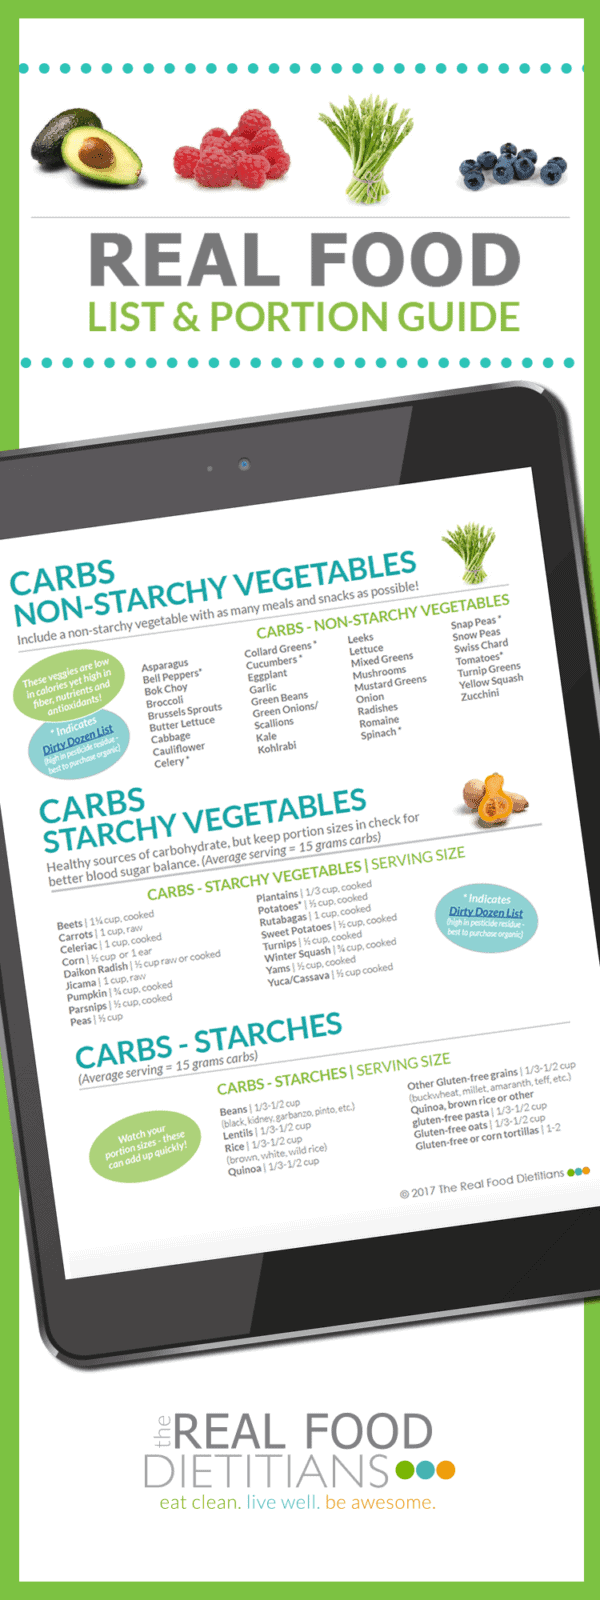 Cut through the info clutter and start eating your way to a healthier you with our FREE downloadable Real Food List & Portion Guide! Gluten-free friendly. | The Real Food Dietitians | https://therealfoodrds.com/real-food-list-portion-guide/